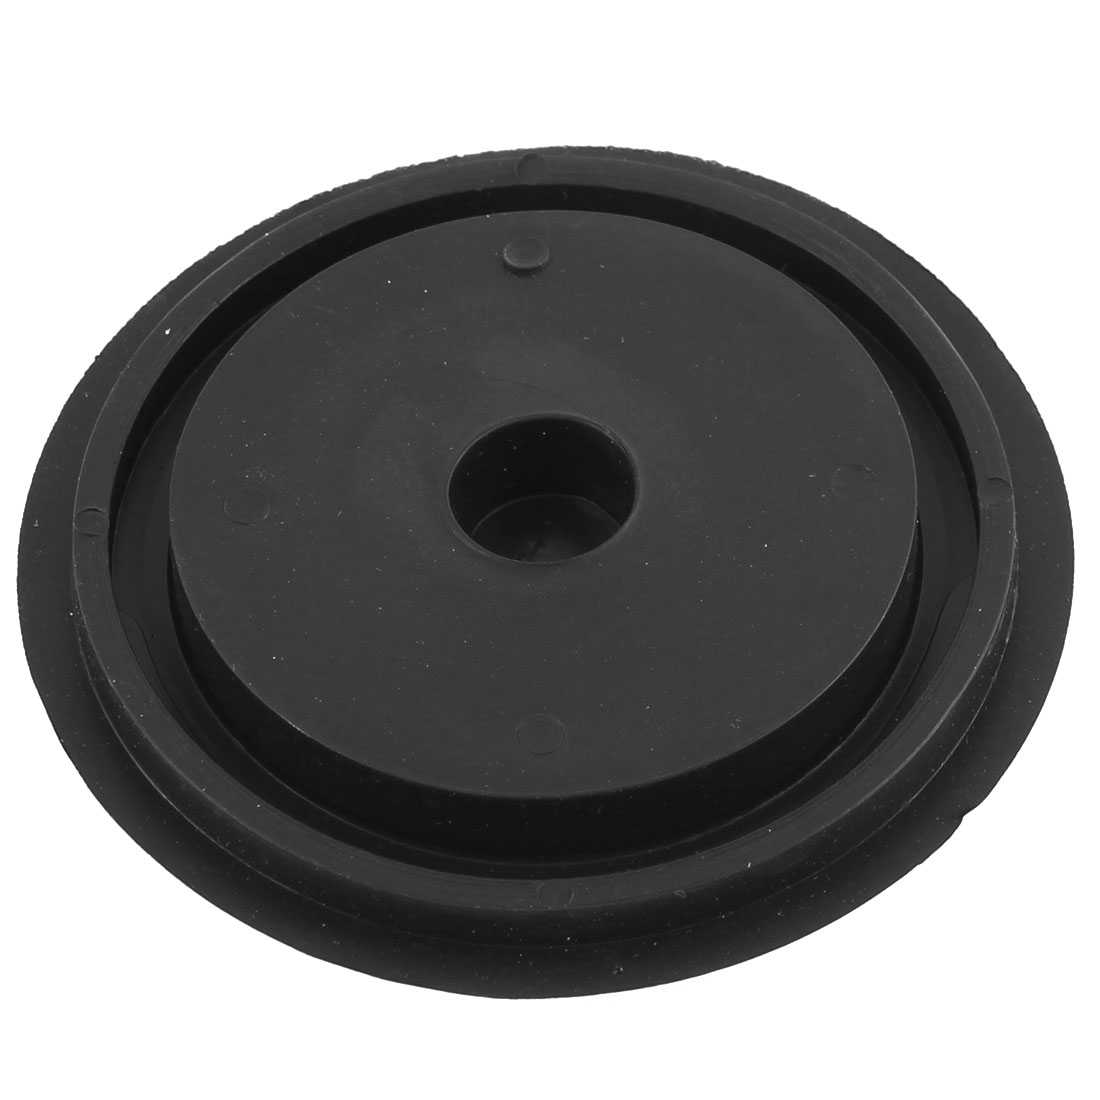 Unique Bargains Black Rubber Basin Water Sink Disposal Stopper Blocker for Bathroom Kitchen for Home Essential